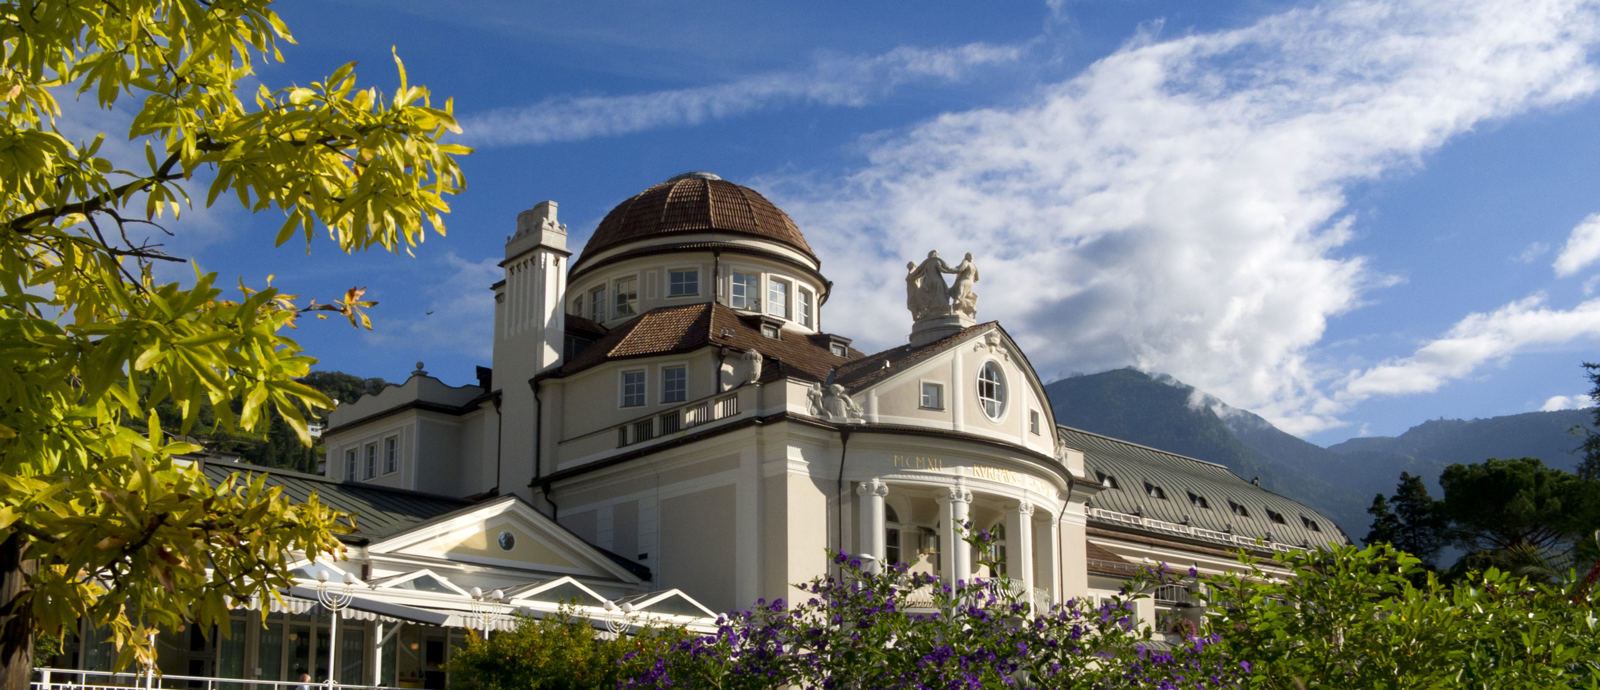 Culture House Merano, South Tyrol